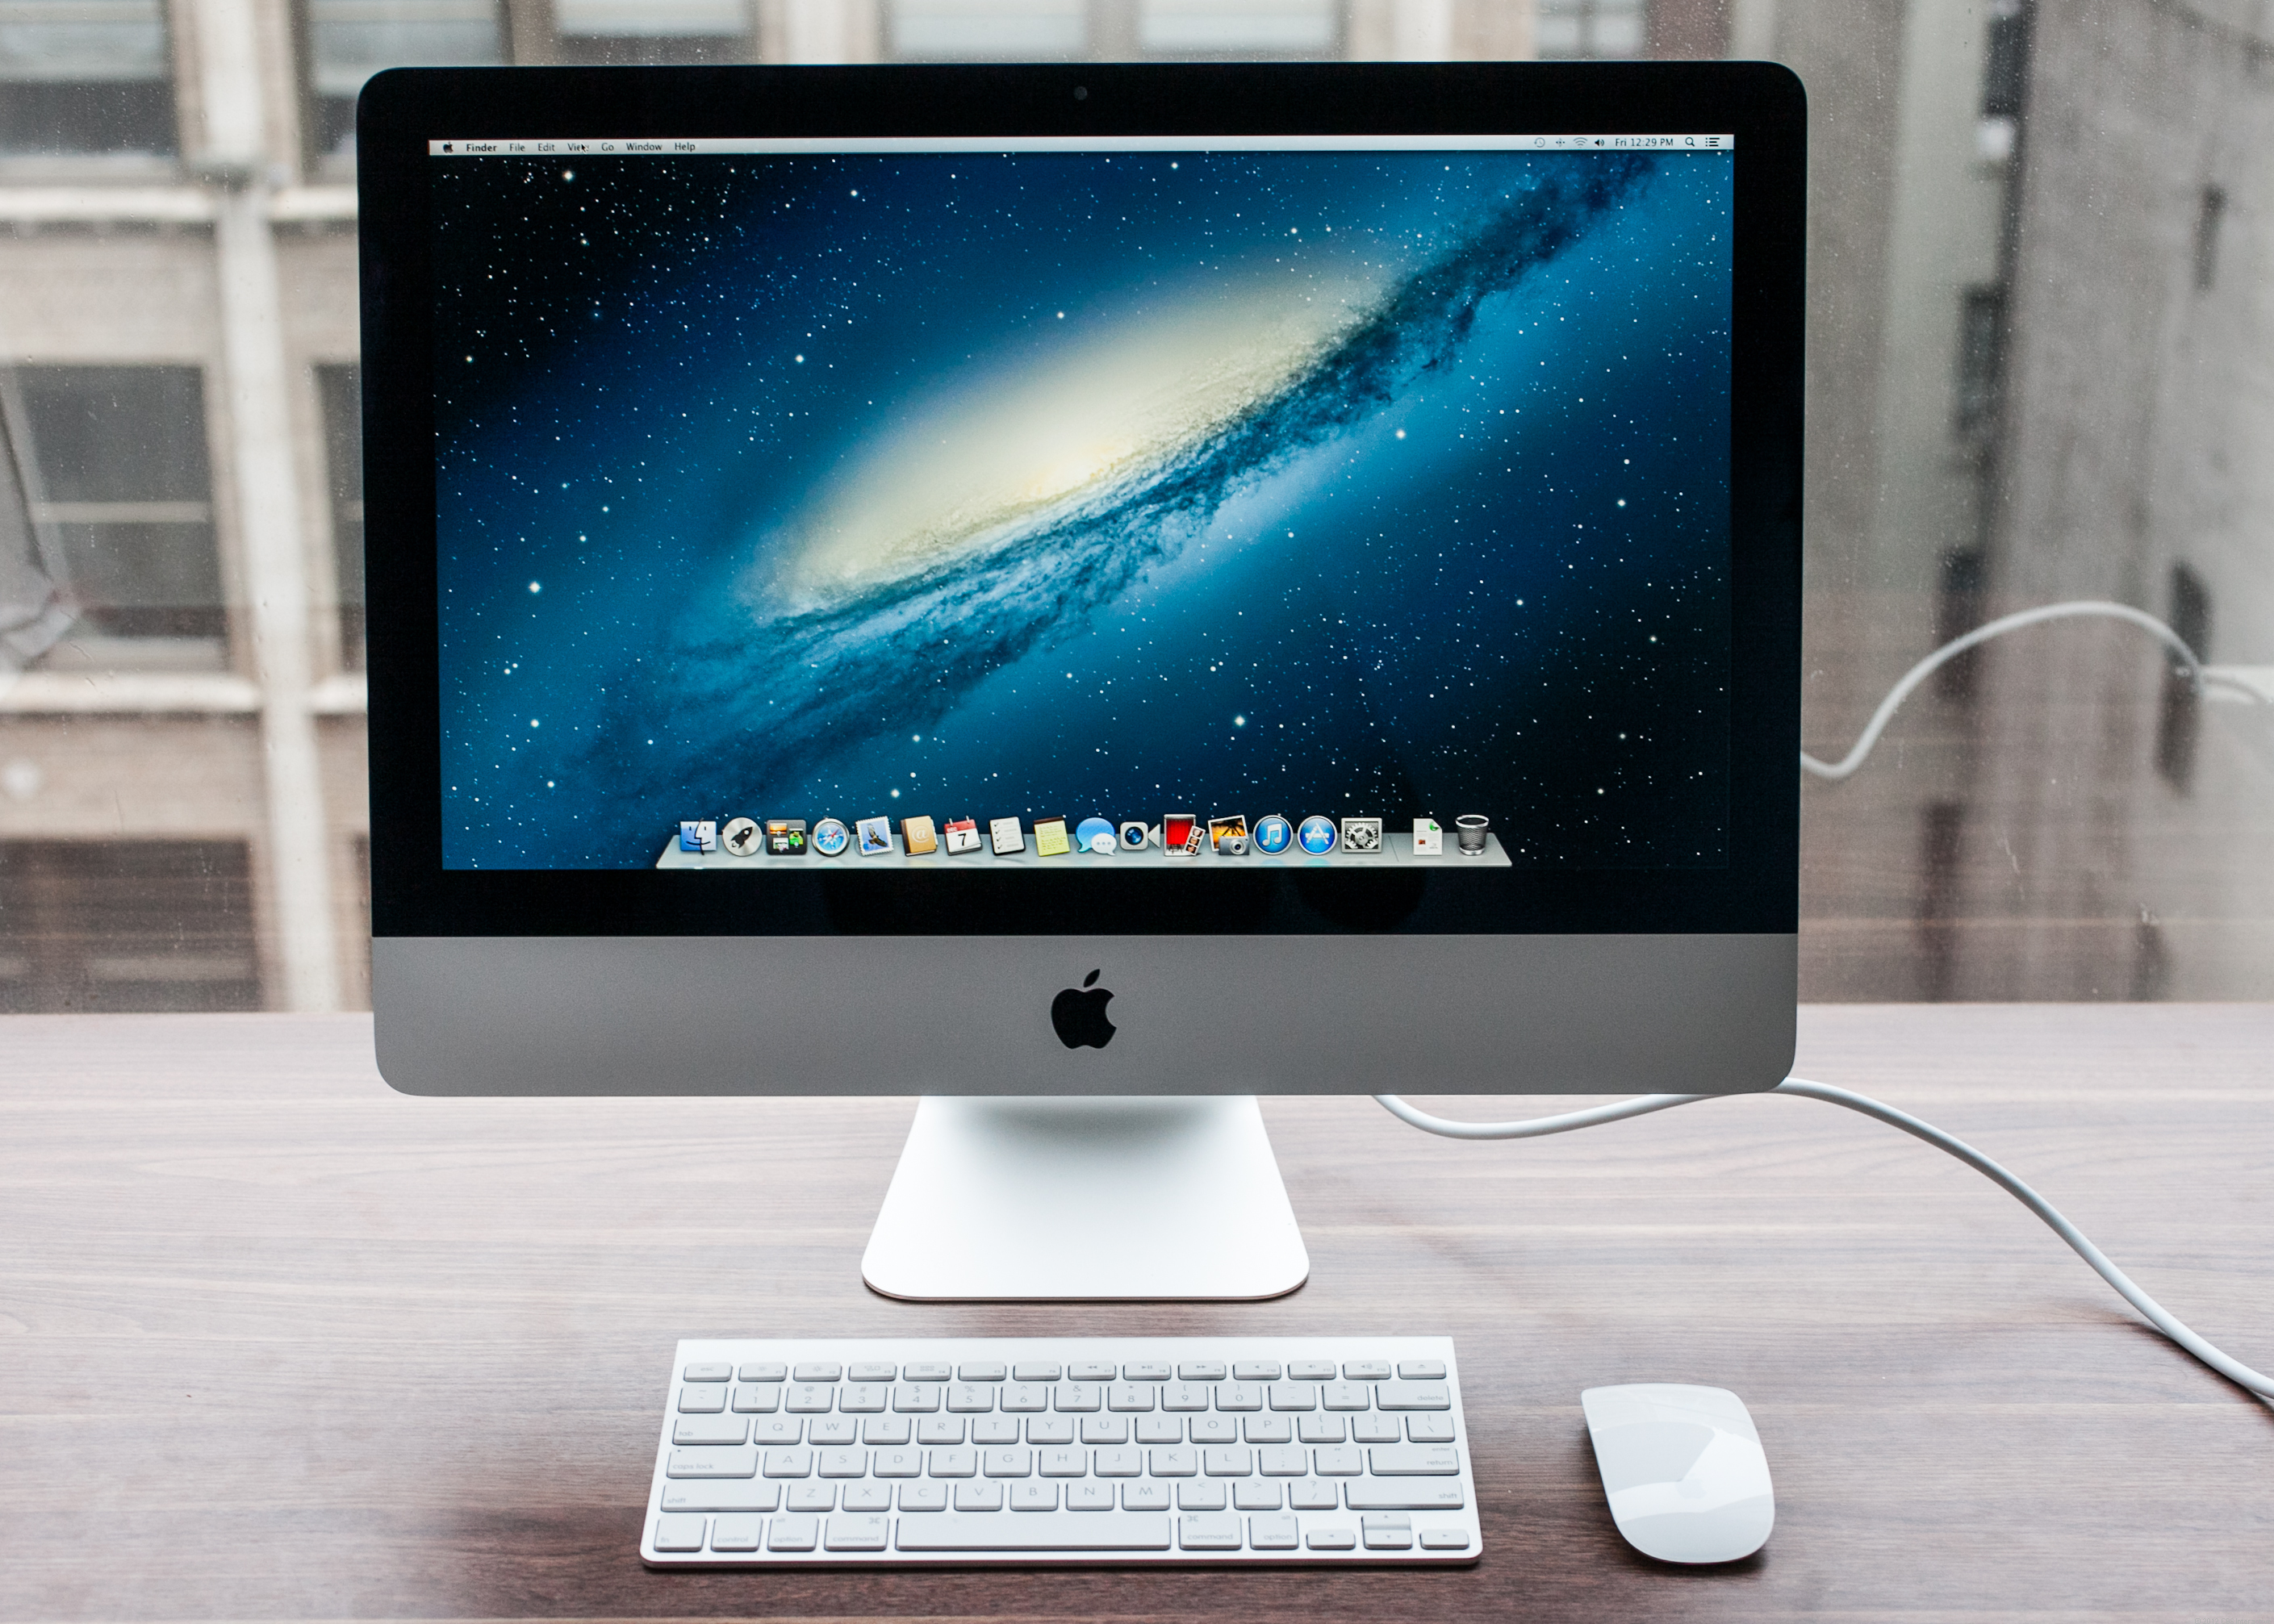 Video: Primer vistazo: Apple iMac 2012